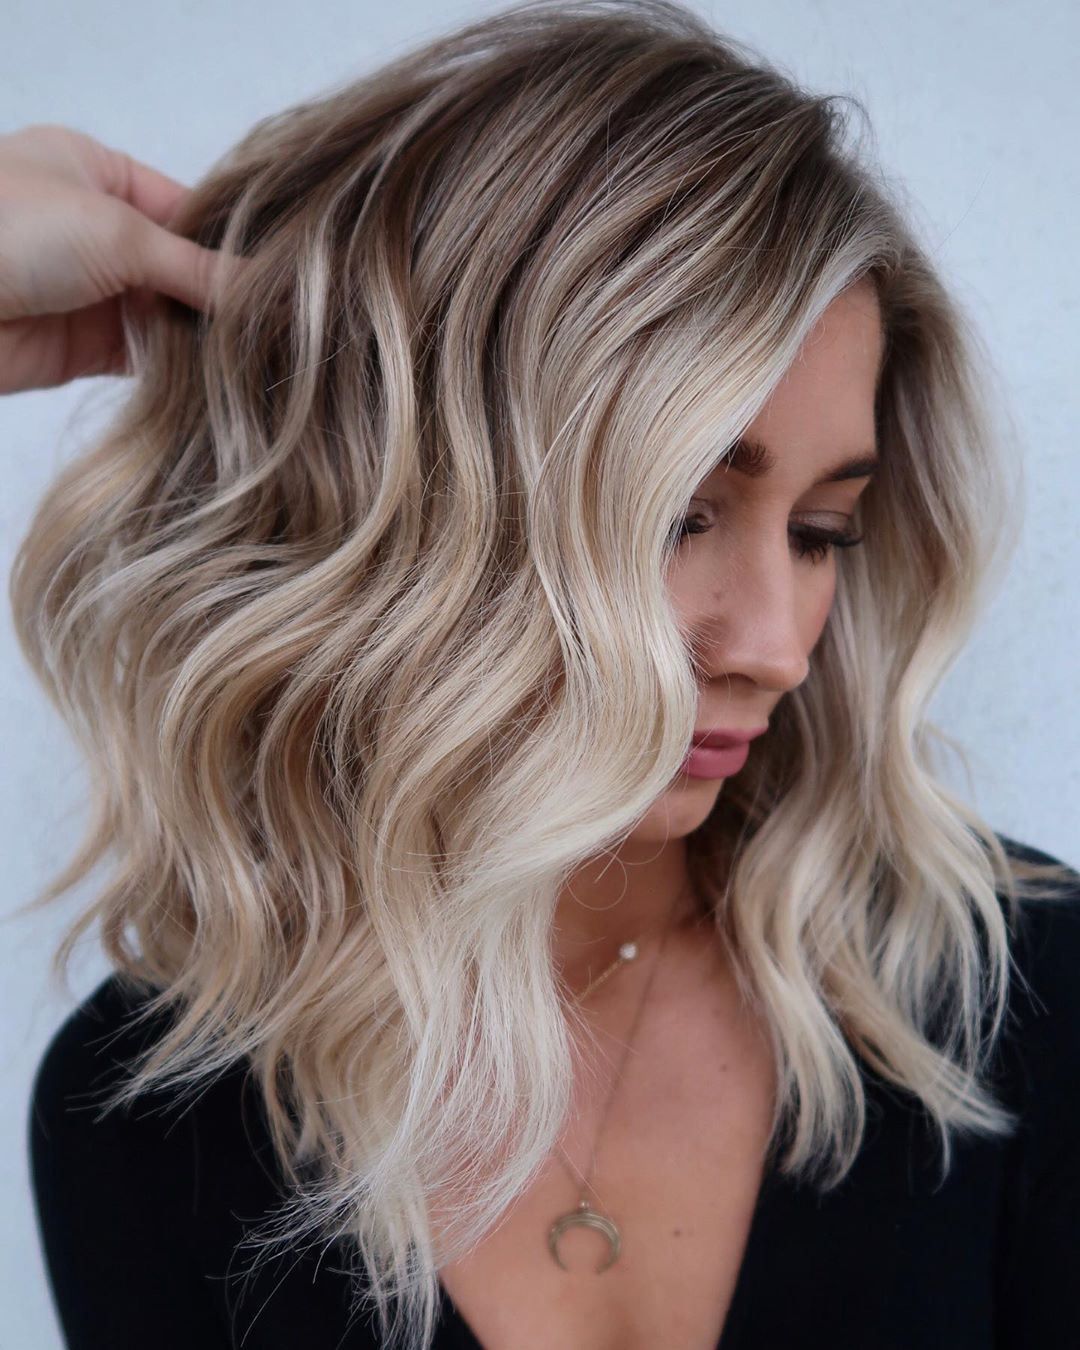 Latest Hair Design Trends – A Guide to Choosing a Black Hairstyle